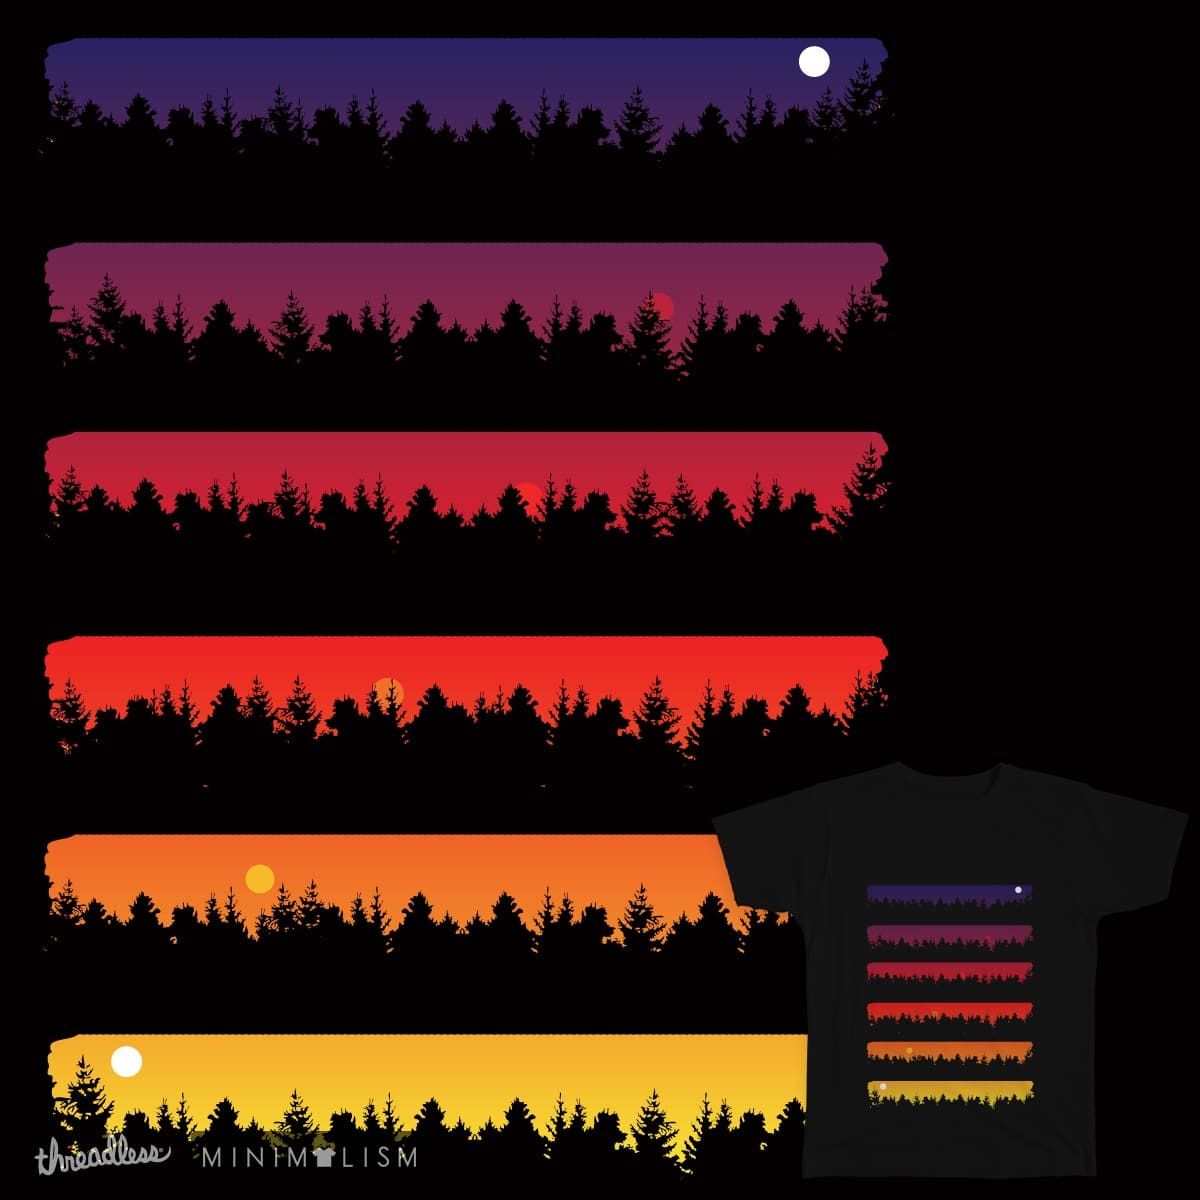 Dawn To Dusk by daletheskater on Threadless